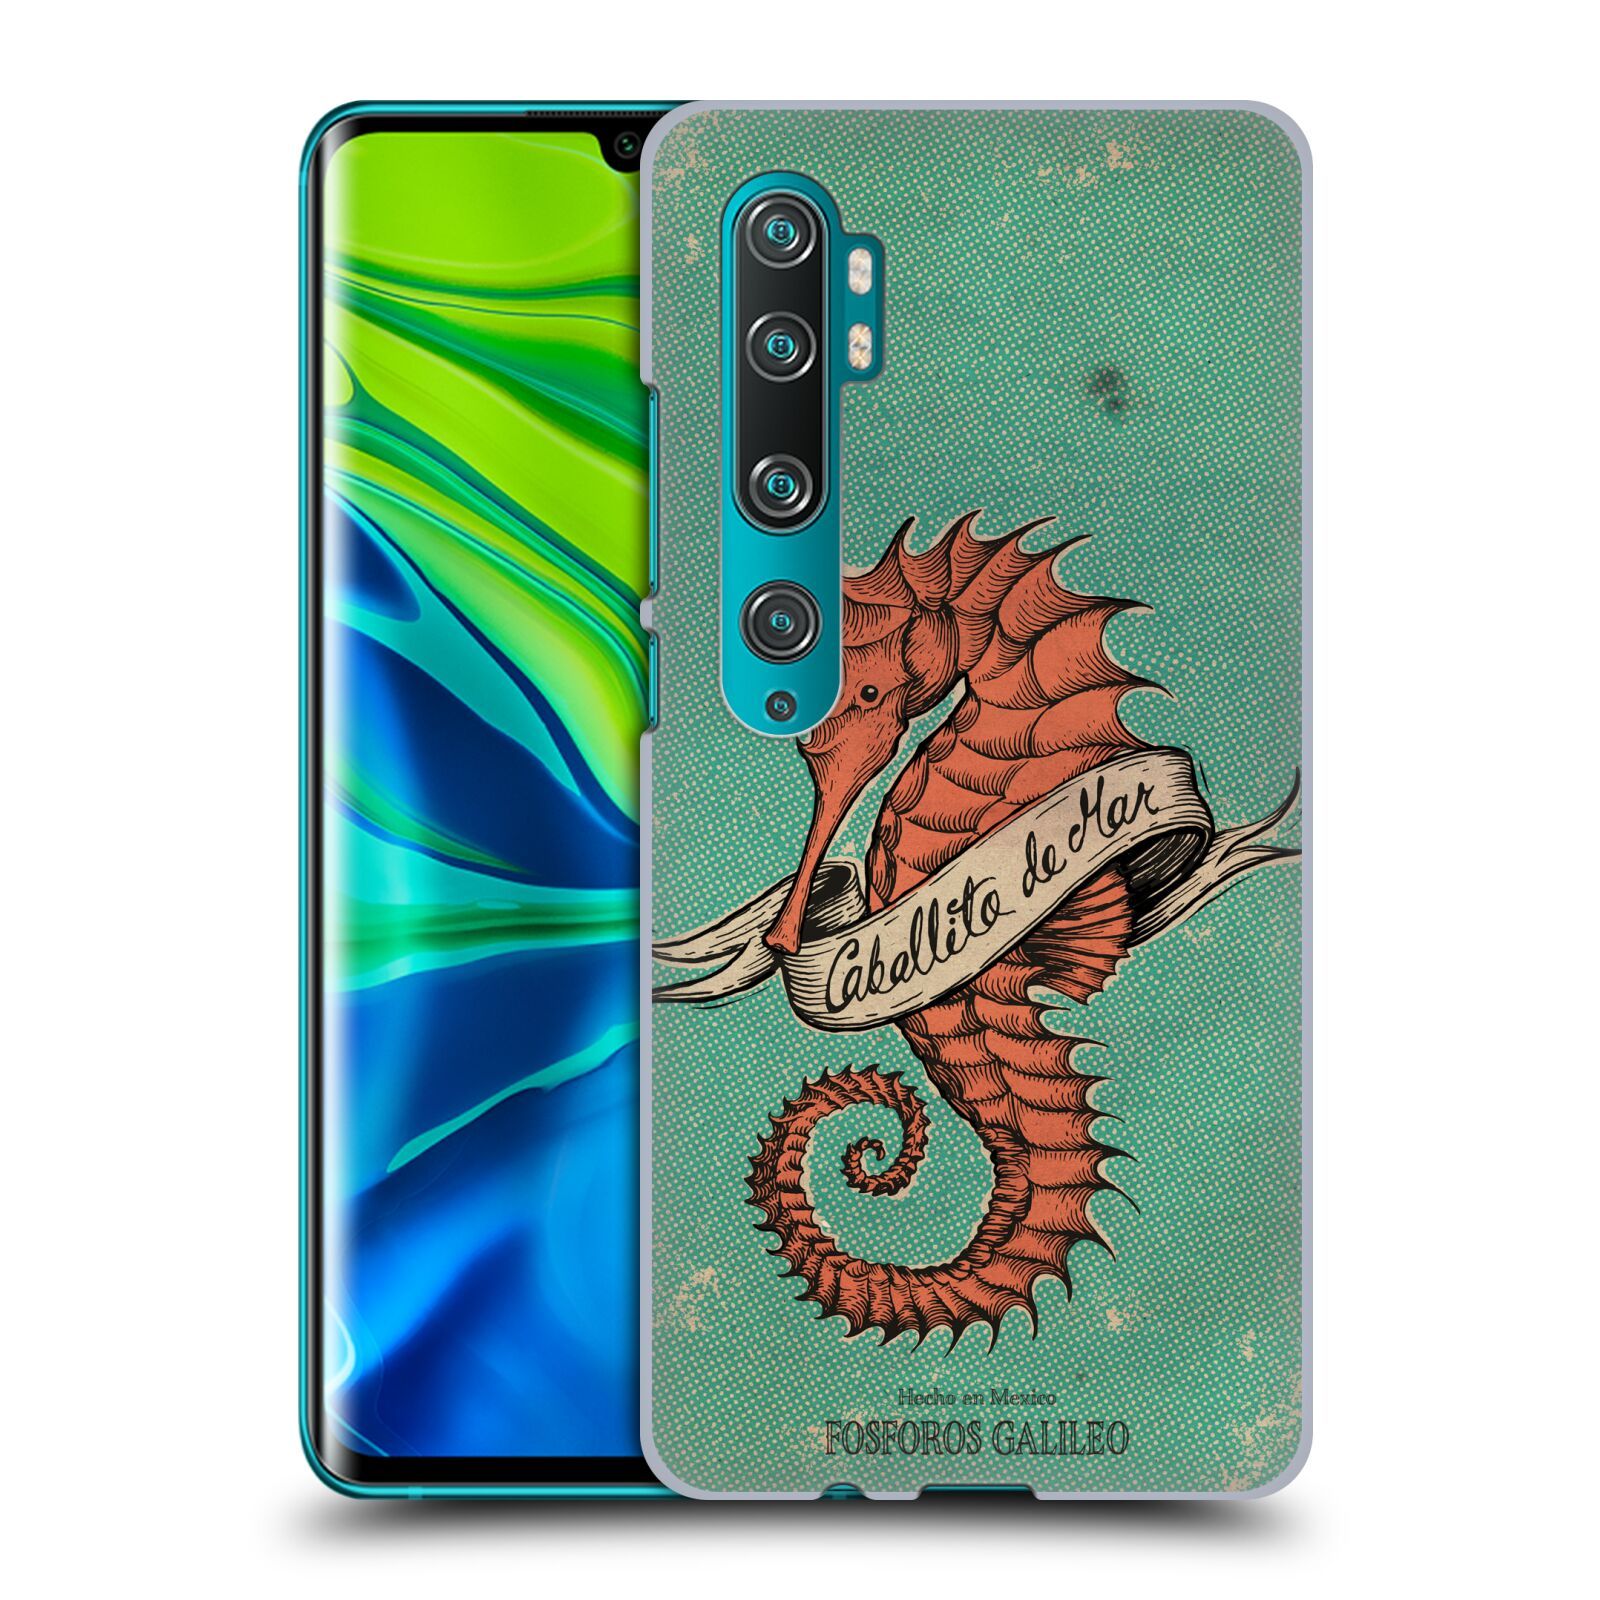 Official Fosforos Galileo Diseños Caballito De Mar Case for Xiaomi Mi CC9 Pro / Mi Note 10 / Pro